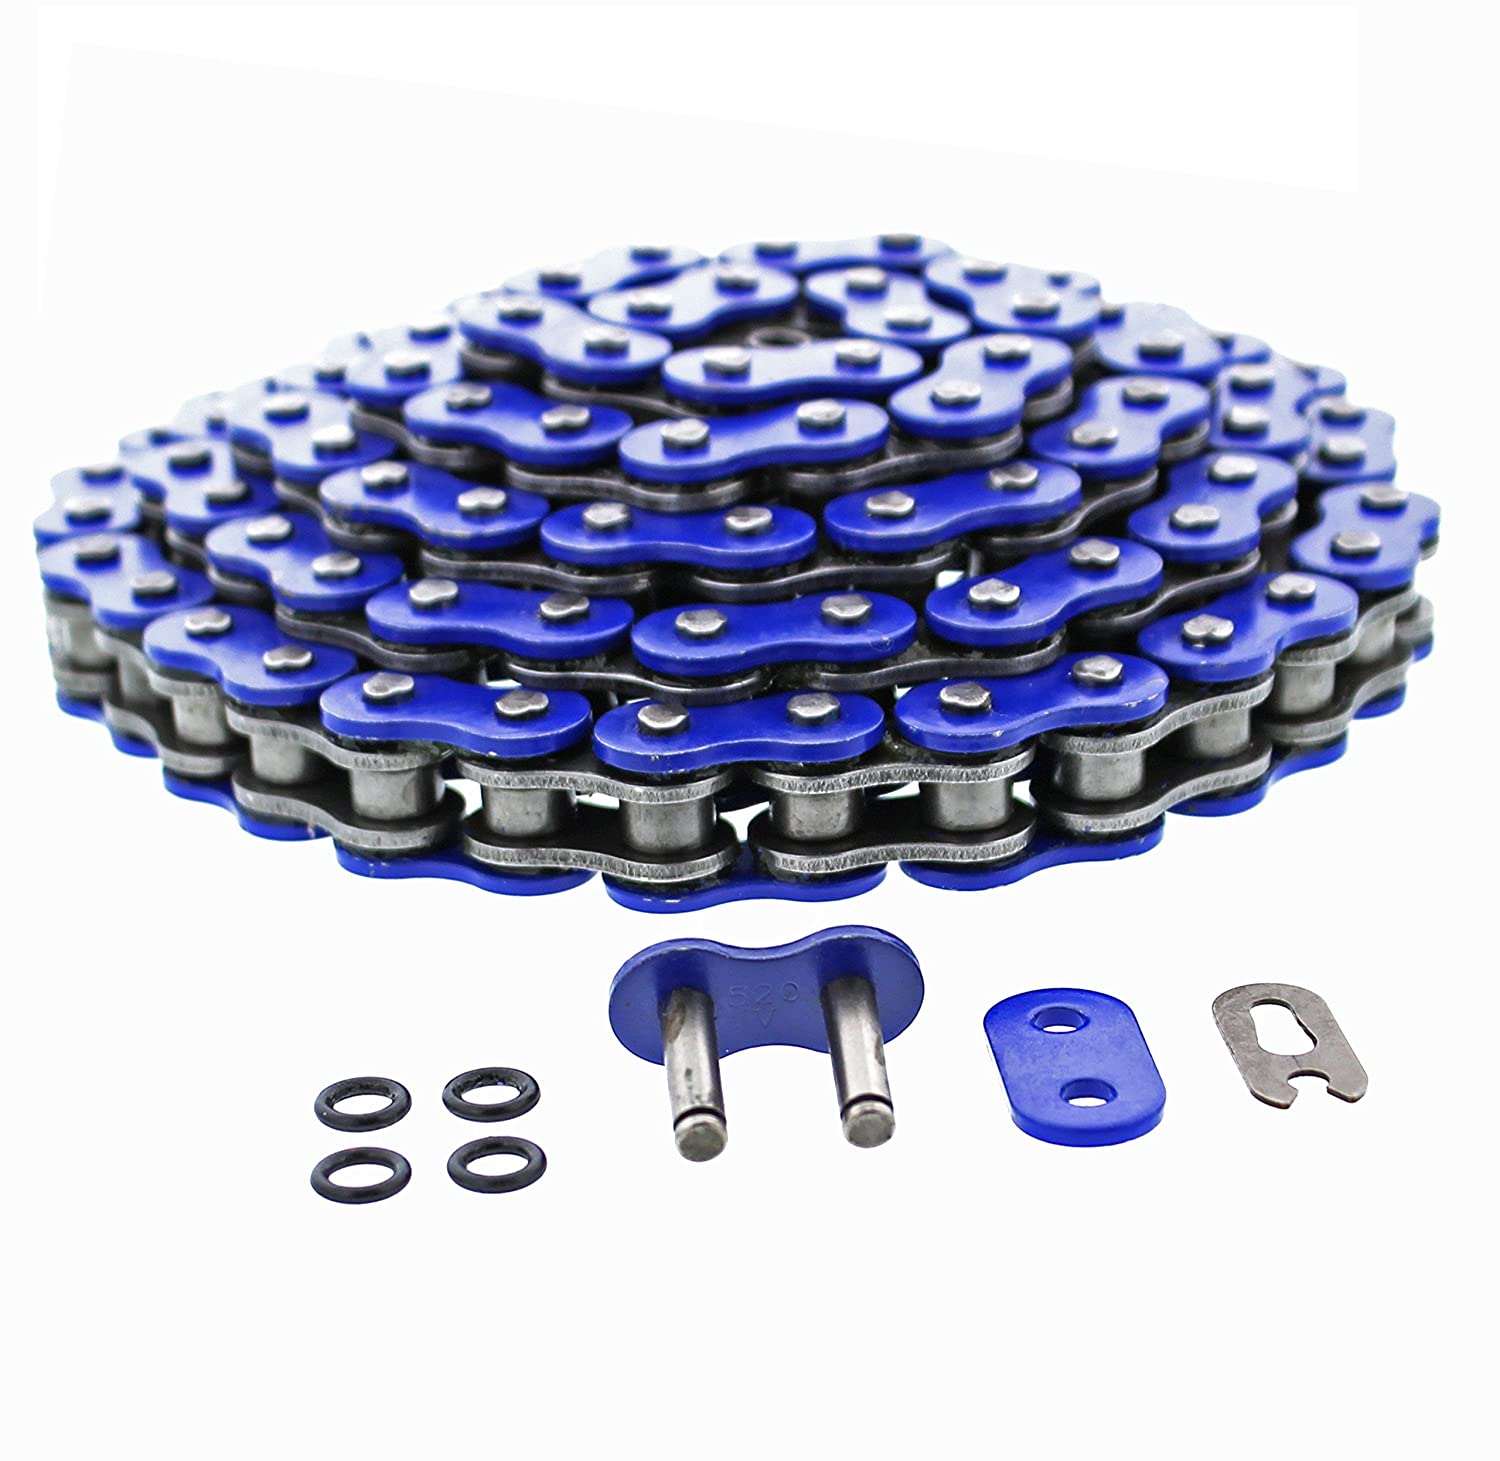 Masterlinks Blue O-Ring Chain 520-OB pack of 3 by Race-Driven